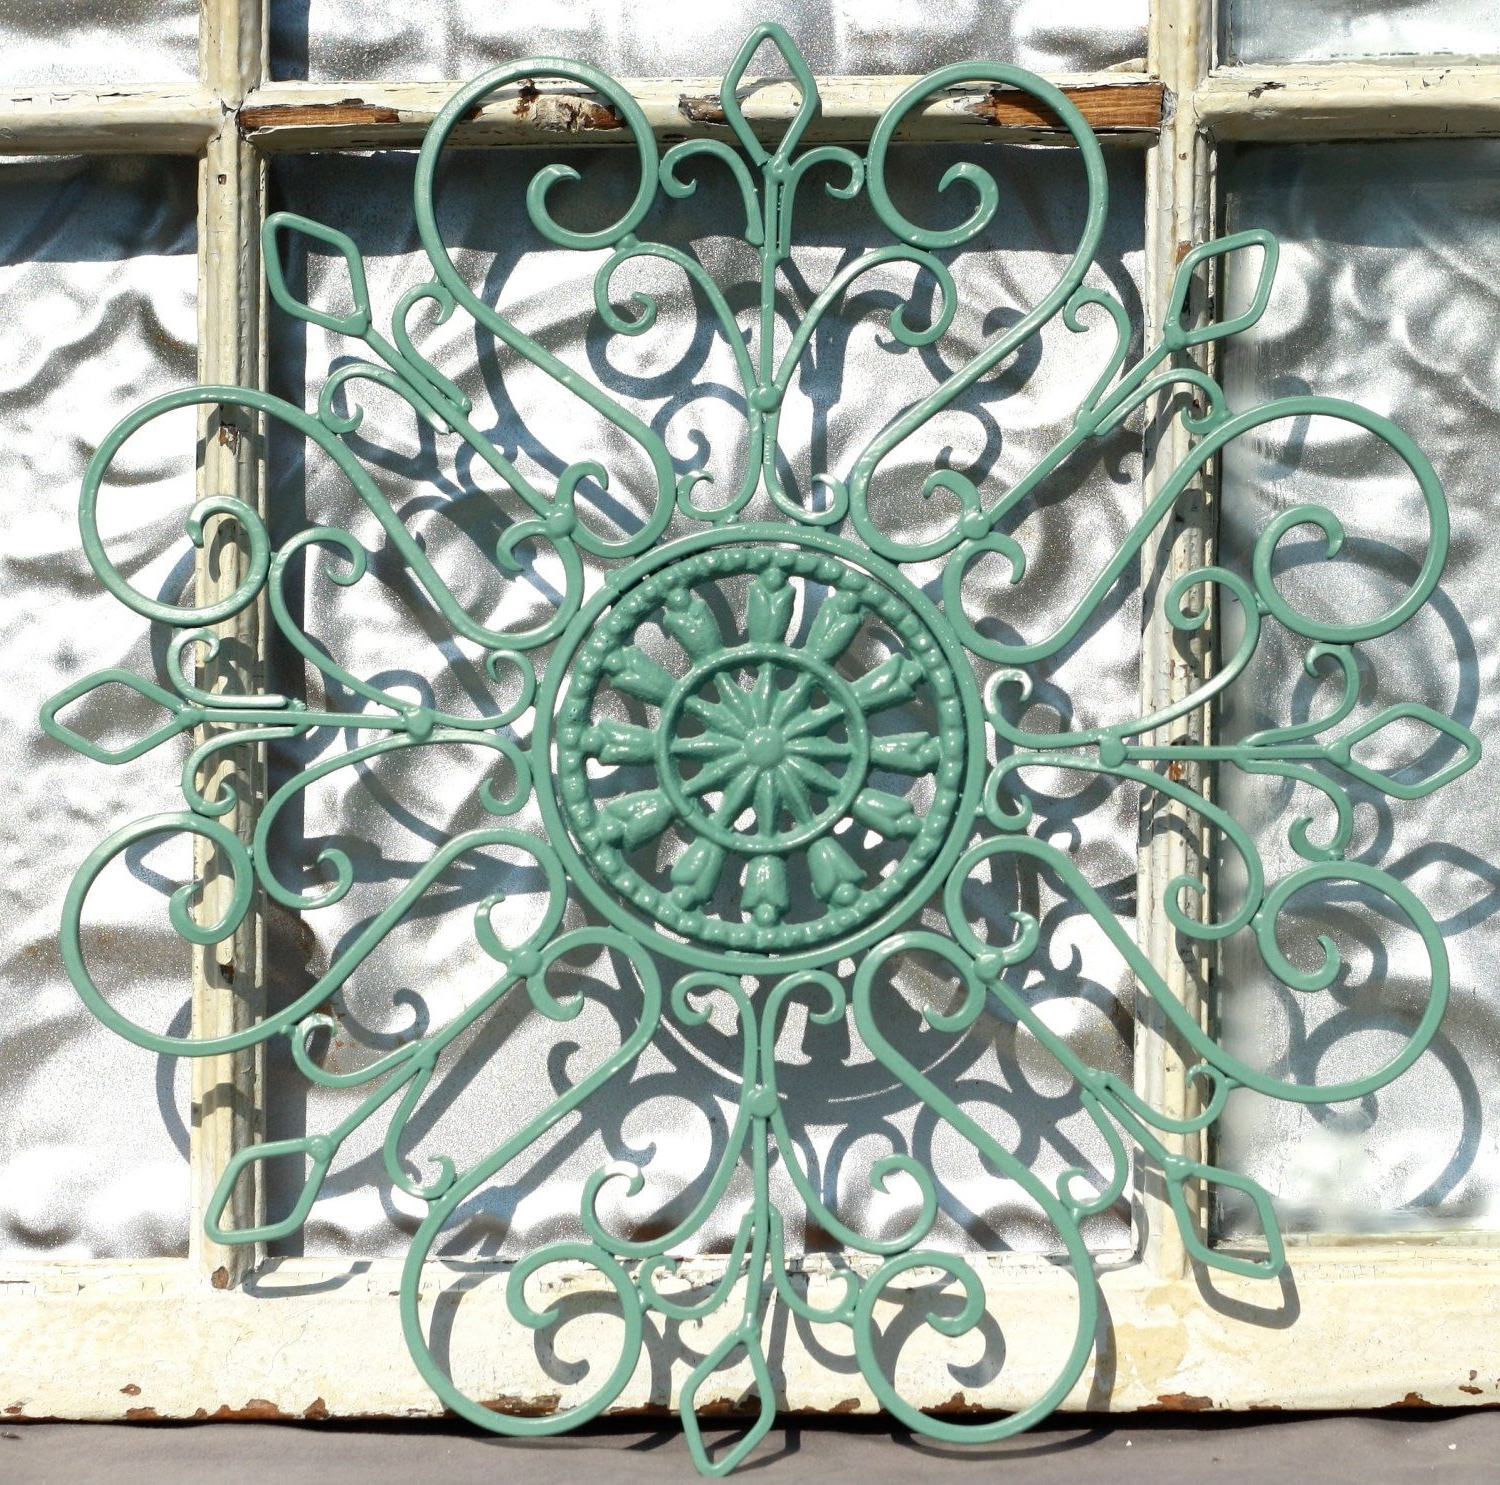 Wrought Iron Wall Decor/ Metal Wall Hanging/ Indoor/ Outdoor Metal Inside Latest Metal Outdoor Wall Art (View 10 of 20)